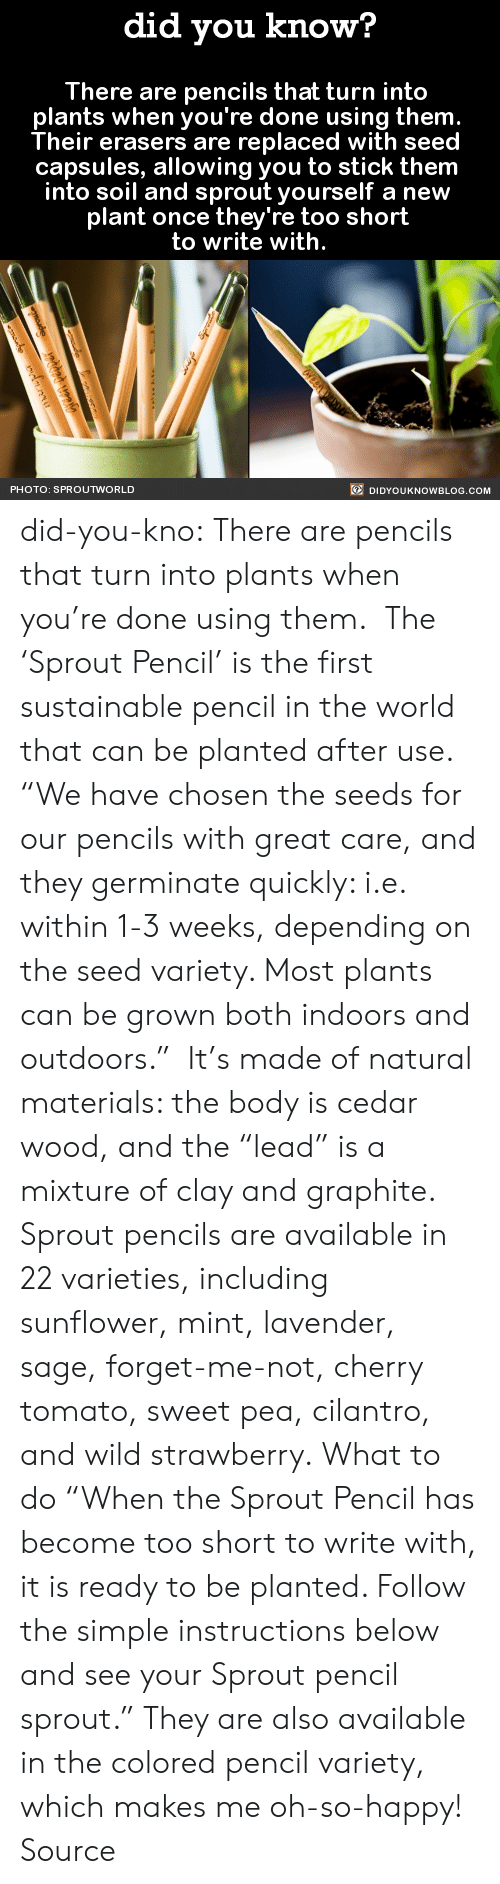 """Gif, Tumblr, and Blog: did you know?  There are pencils that turn into  plants when you're done using them  Their erasers are replaced with seed  capsules, allowing you to stick them  into soil and sprout yourself a new  plant once they're too short  to write with.  PHOTO: SPROUTWORLD  DIDYOUKNOWBLOG.COM did-you-kno:  There are pencils that turn into  plants when you're done using them.   The 'Sprout Pencil' is the first sustainable pencil in the world that can be planted after use.   """"We have chosen the seeds for our pencils with great care, and they germinate quickly: i.e. within 1-3 weeks, depending on the seed variety. Most plants can be grown both indoors and outdoors."""" It's made of natural materials: the body is cedar wood, and the """"lead"""" is a mixture of clay and graphite. Sprout pencils are available in 22 varieties, including sunflower, mint, lavender, sage, forget-me-not, cherry tomato, sweet pea, cilantro, and wild strawberry. What to do """"When the Sprout Pencil has become too short to write with, it is ready to be planted. Follow the simple instructions below and see your Sprout pencil sprout."""" They are also available in the colored pencil variety, which makes me oh-so-happy! Source"""